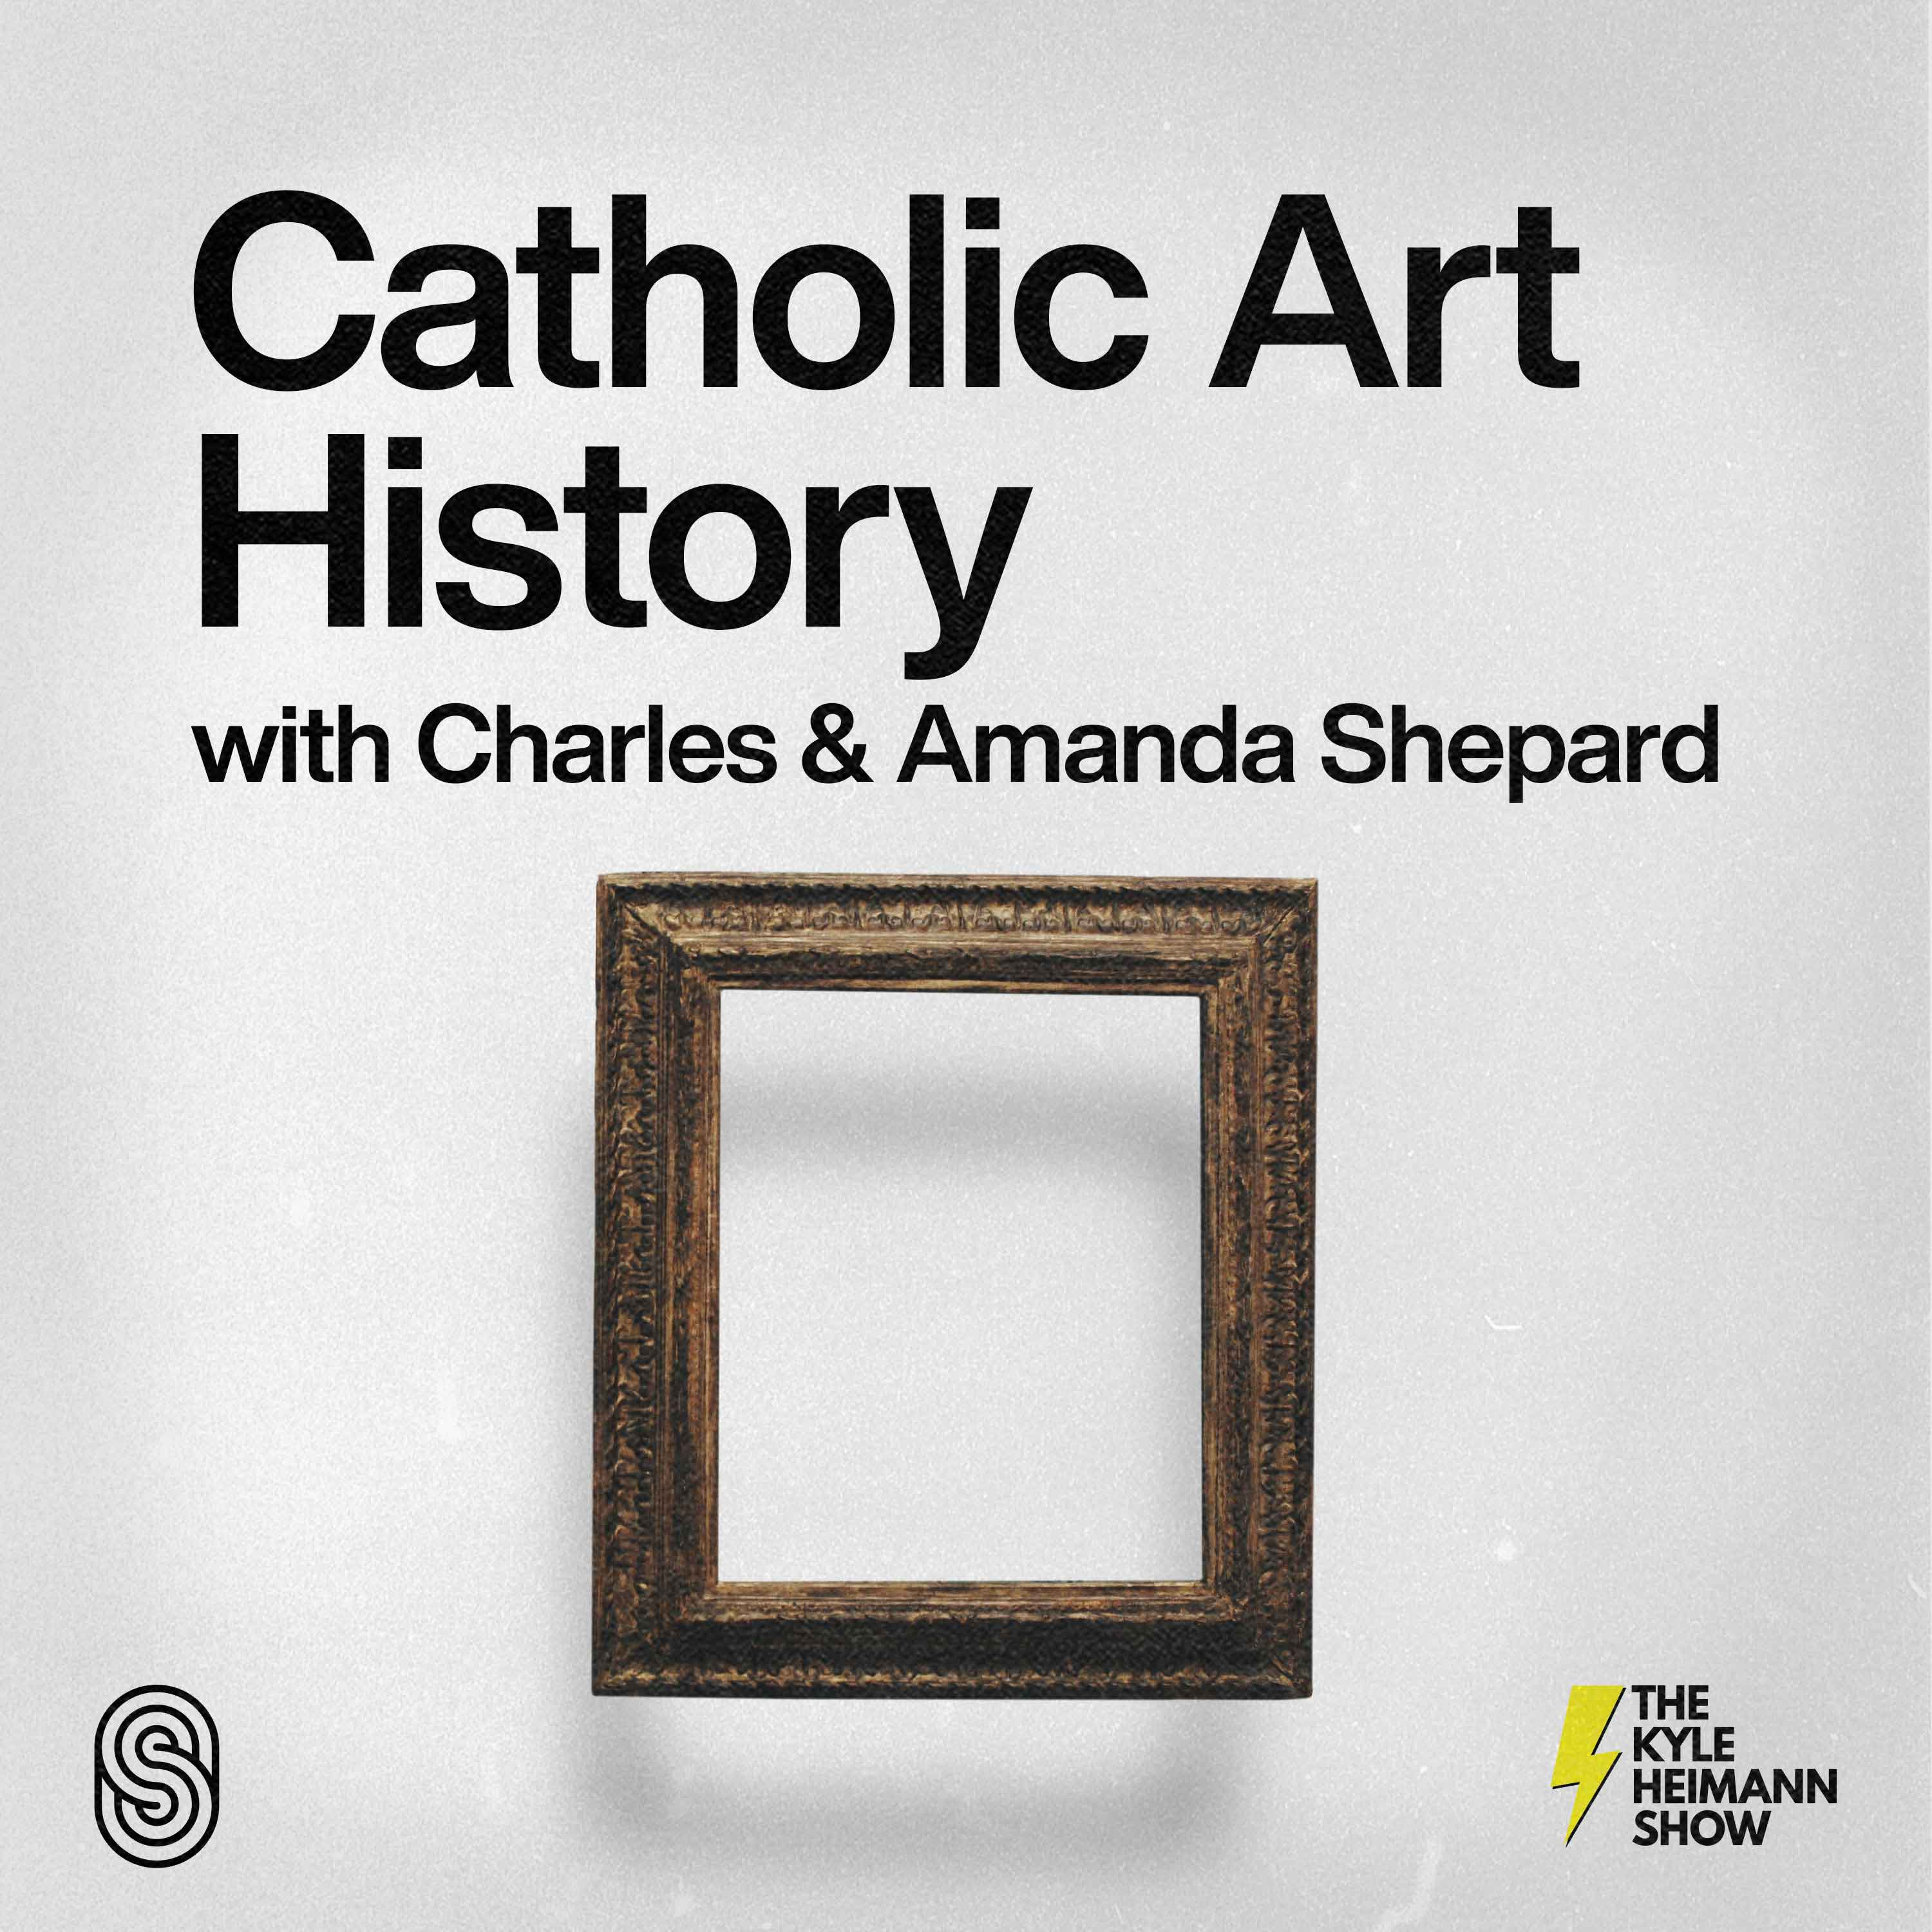 Catholic Art History - With Charles and Amanda Shepard - The Kyle Heimann Show